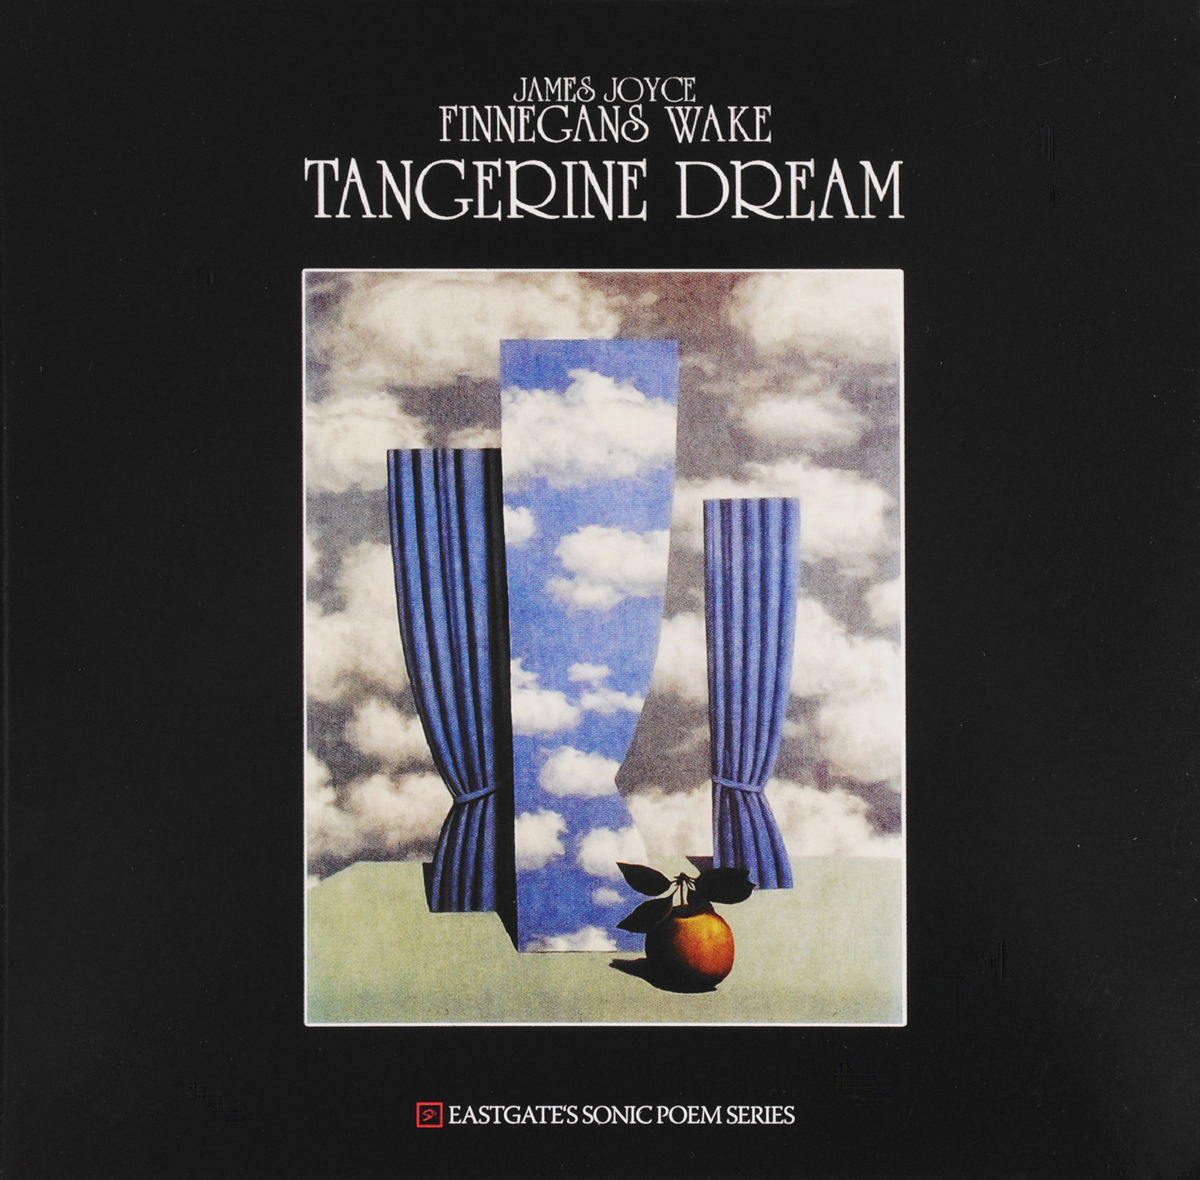 Tangerine Dream. Finnegans Wake